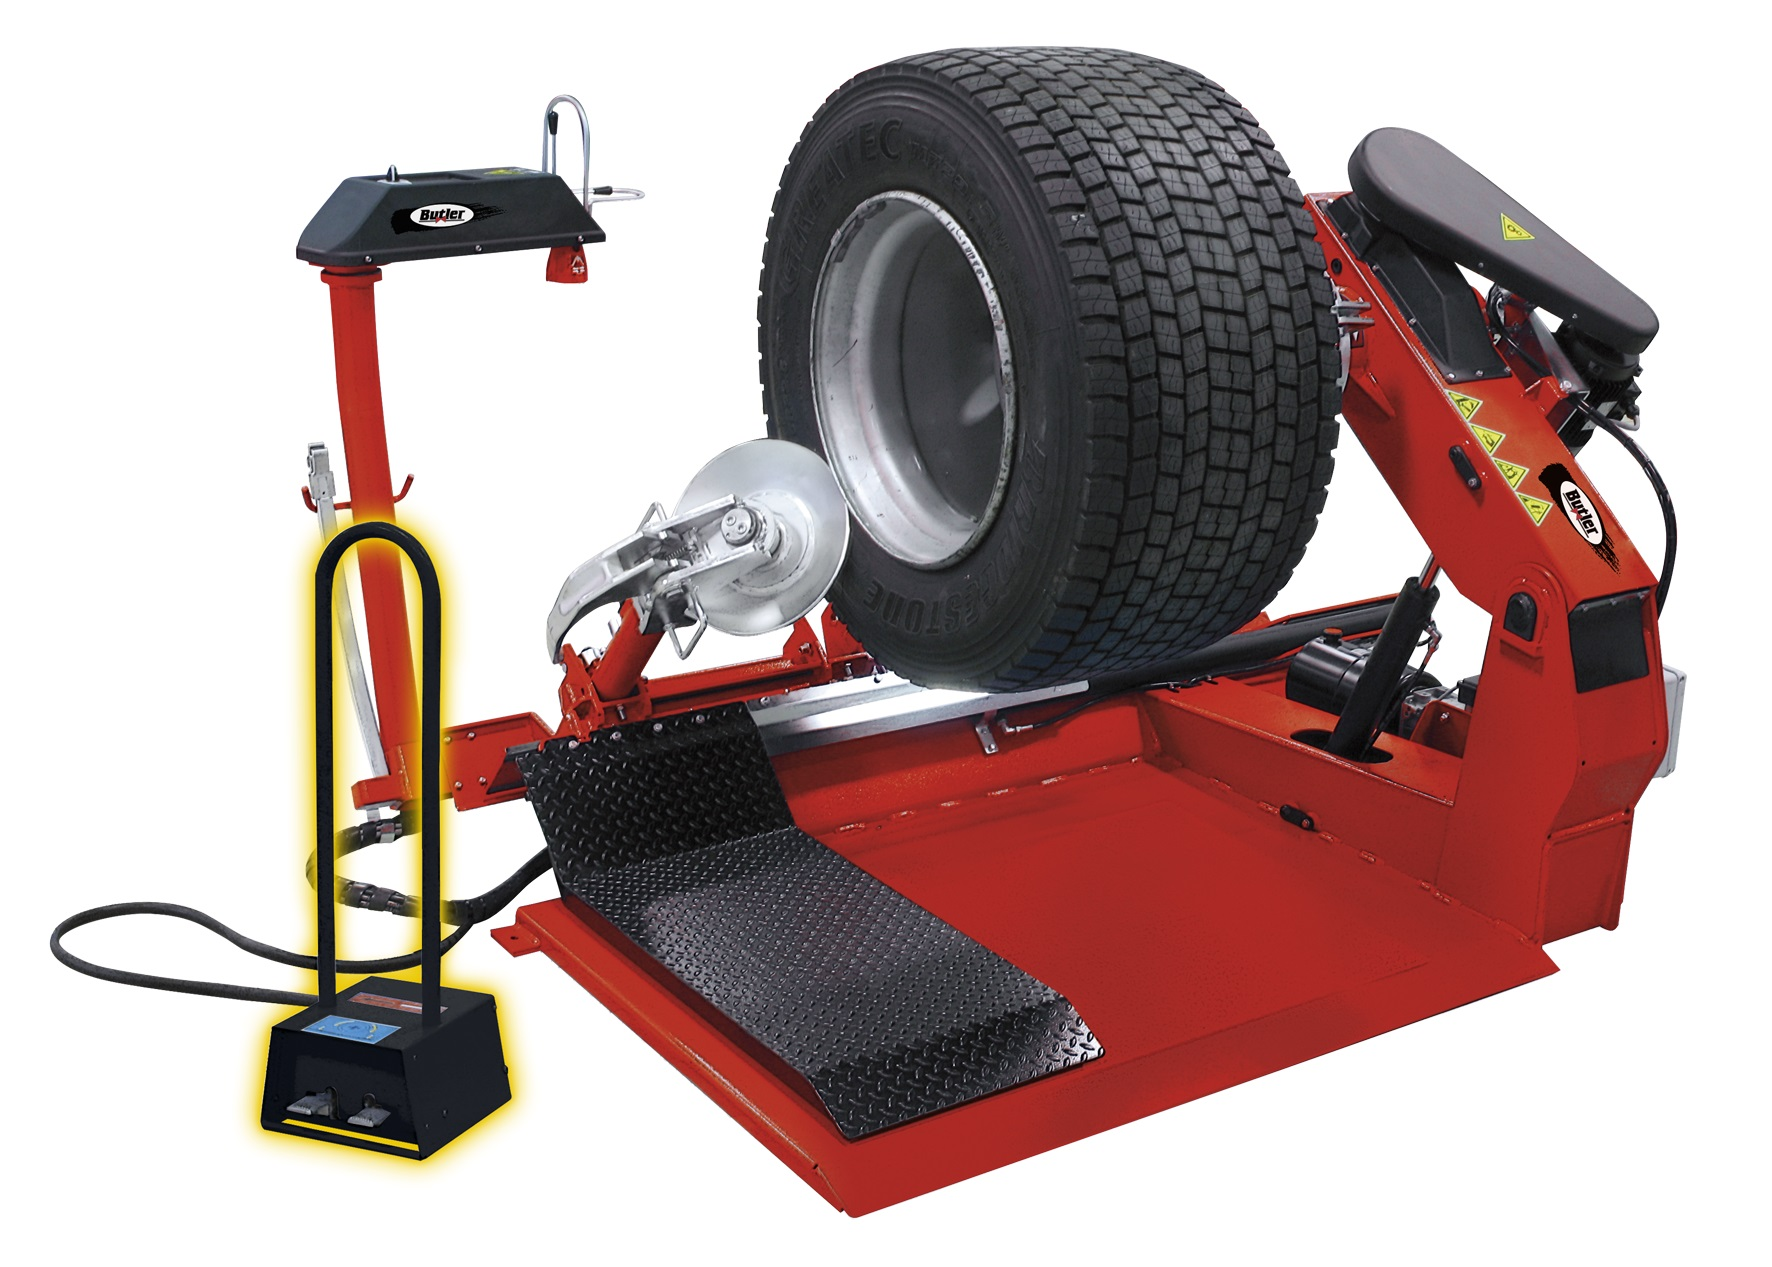 NAV41.11N, Cтенд шиномонтажный, TYRE CHANGER W.FIXED CHUCK.TABLE,MOVABLE TOOL CARRIAGE - Clamping capacity 11'-56' - Max wheel width 1100mm